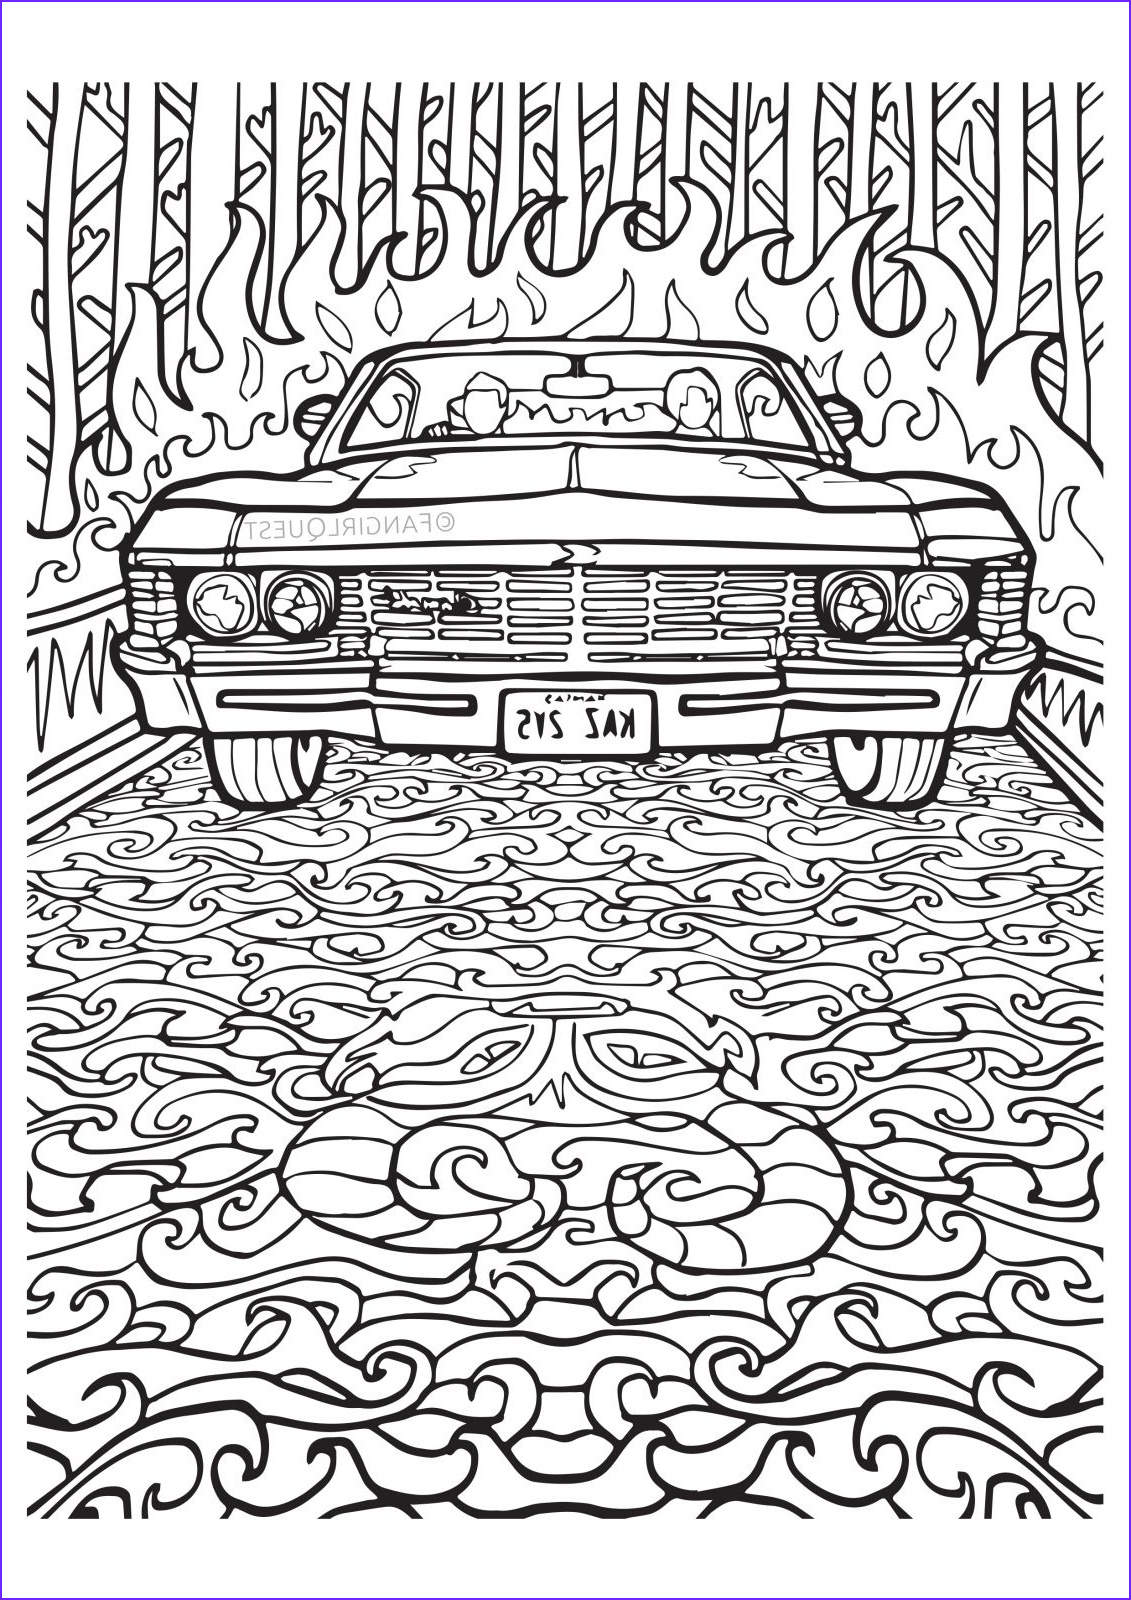 Downloadable Adult Coloring Books Luxury Photos Supernatural Coloring Book — Color Your Own Castiel